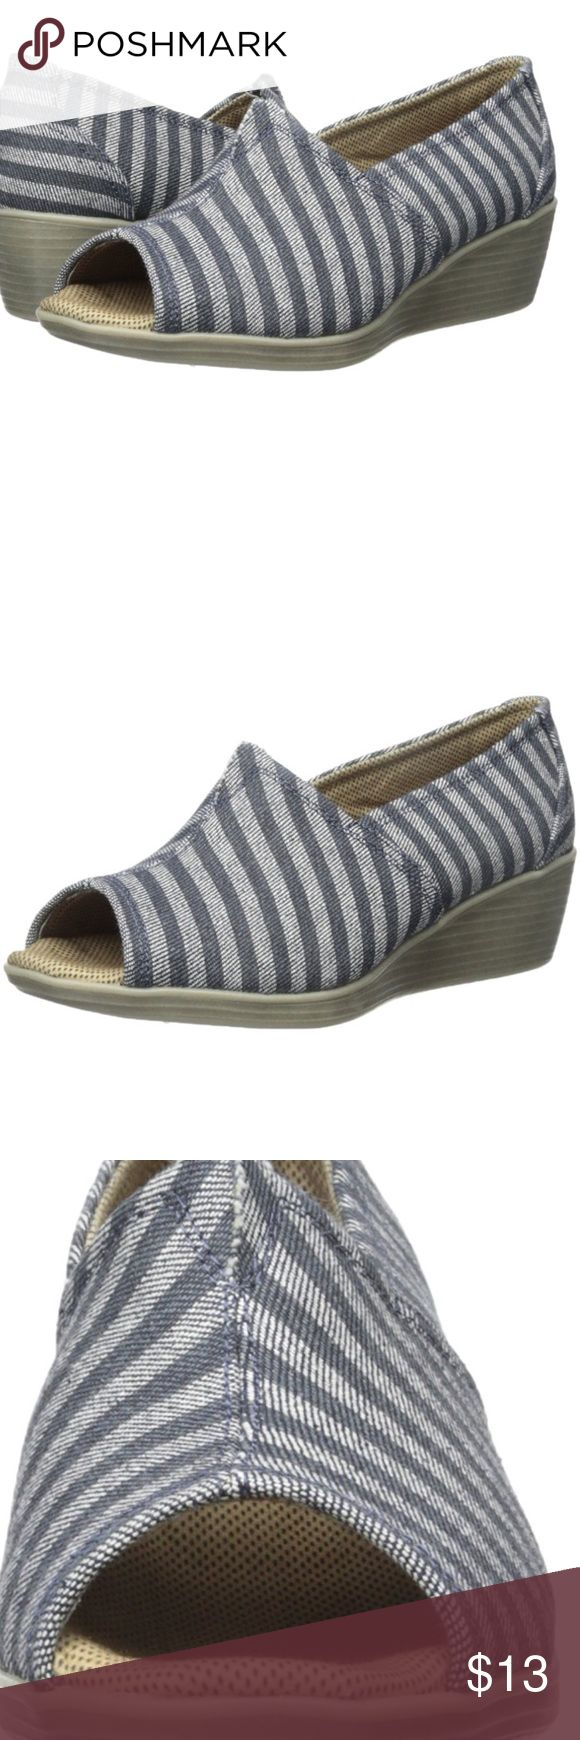 """Eastland Brooke Style Peep Toe Wedge denim upper. Eastland exclusive active memory foam comfort insole supports and conforms to the curves of your foot.Heel measures approximately 1.75"""" Eastland Shoes Wedges"""